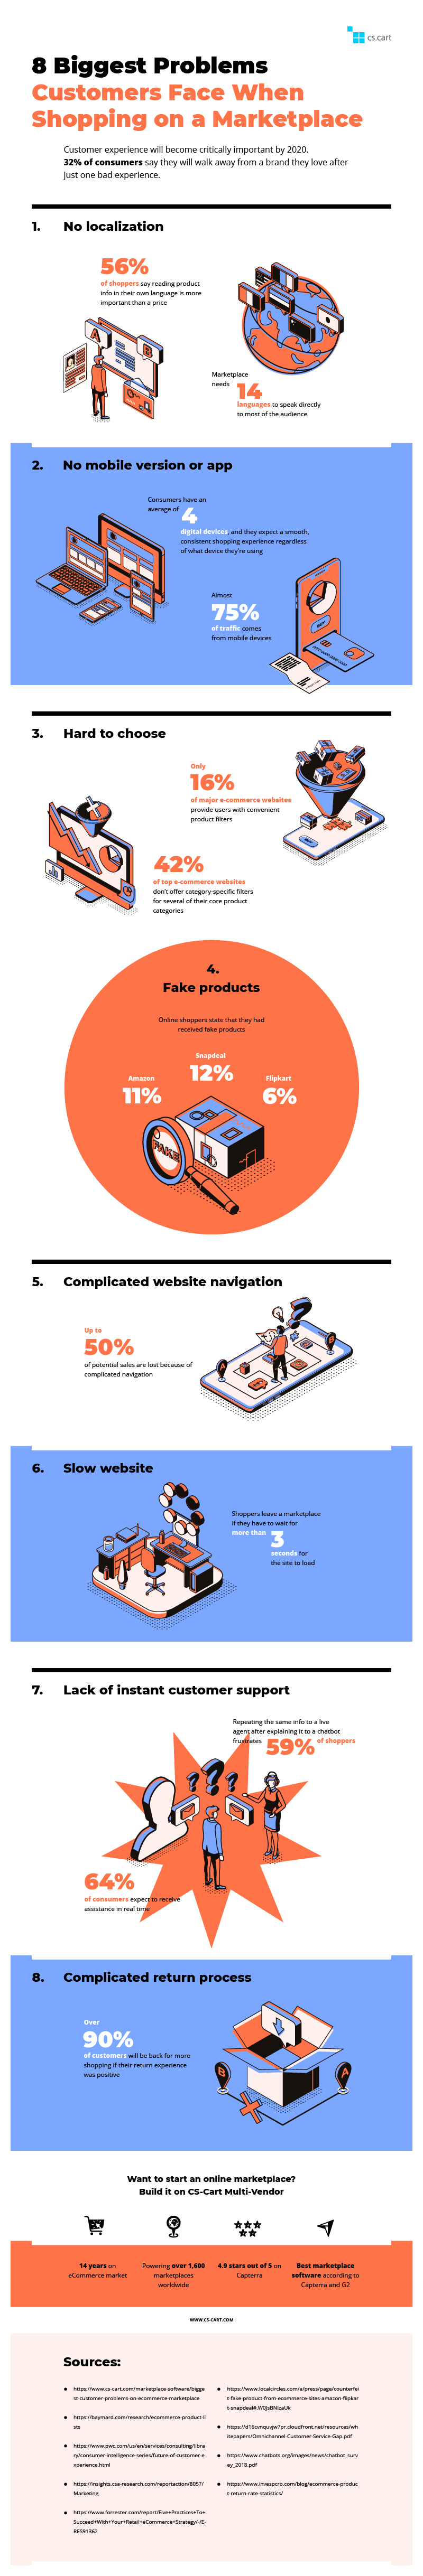 Infographic: 8 Biggest Problems Customers Face on eCommerce Marketplaces